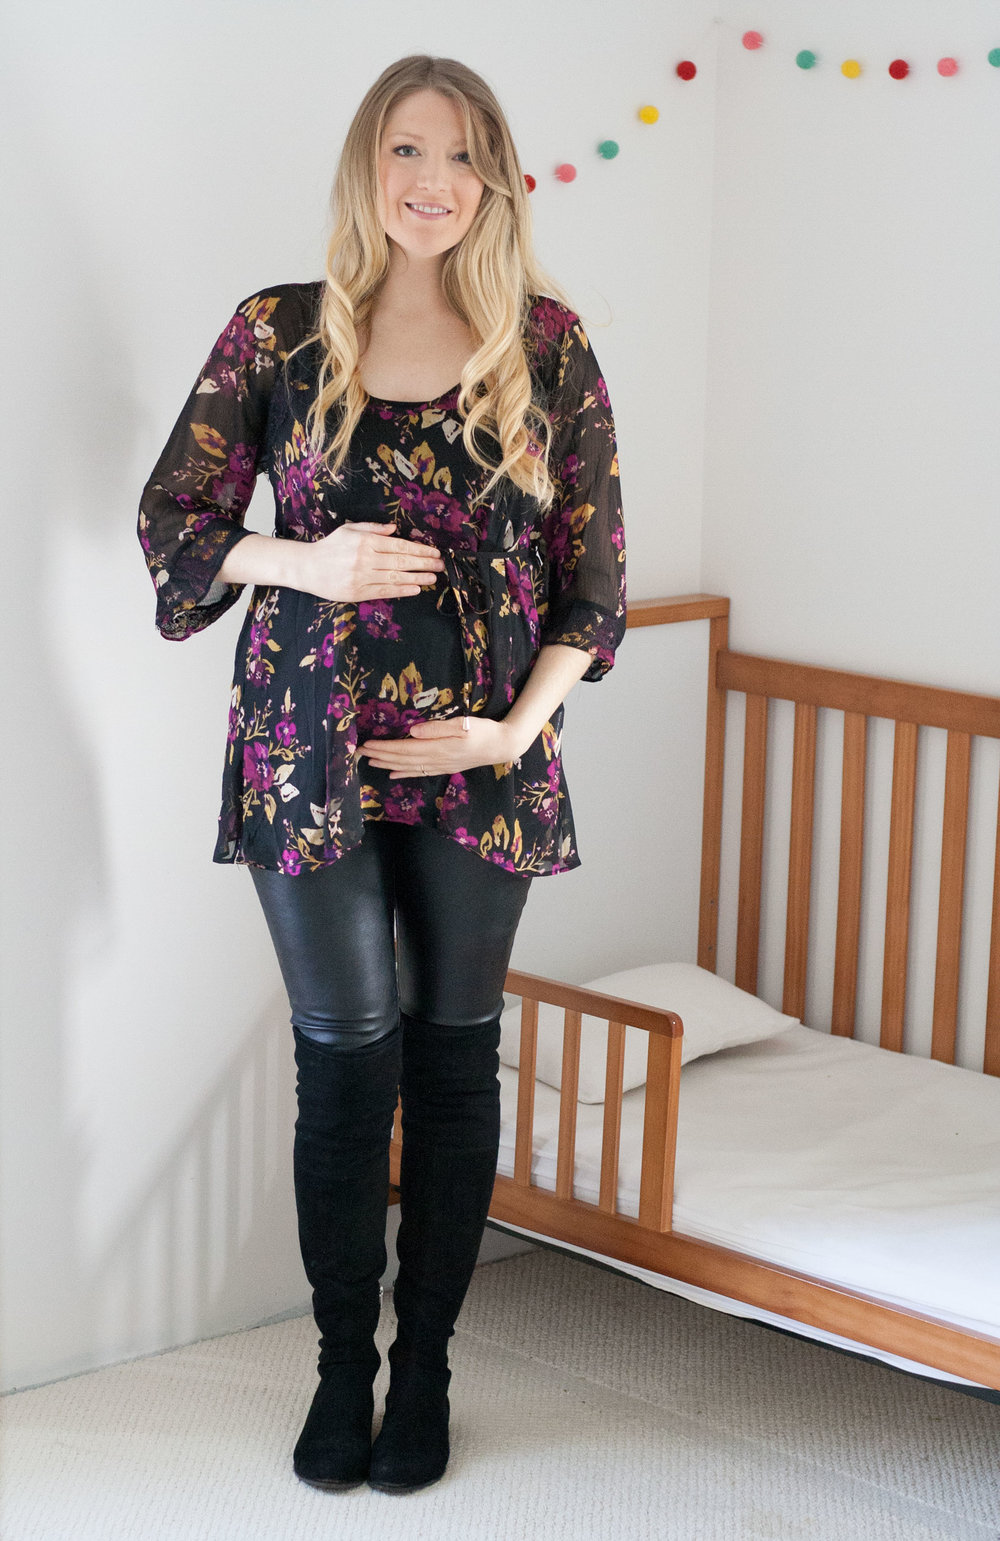 d2937f14f8a94 Jessica Simpson Maternity Hanky Hem Blouse paired with Destination Maternity  Leather Look Leggings (similar here